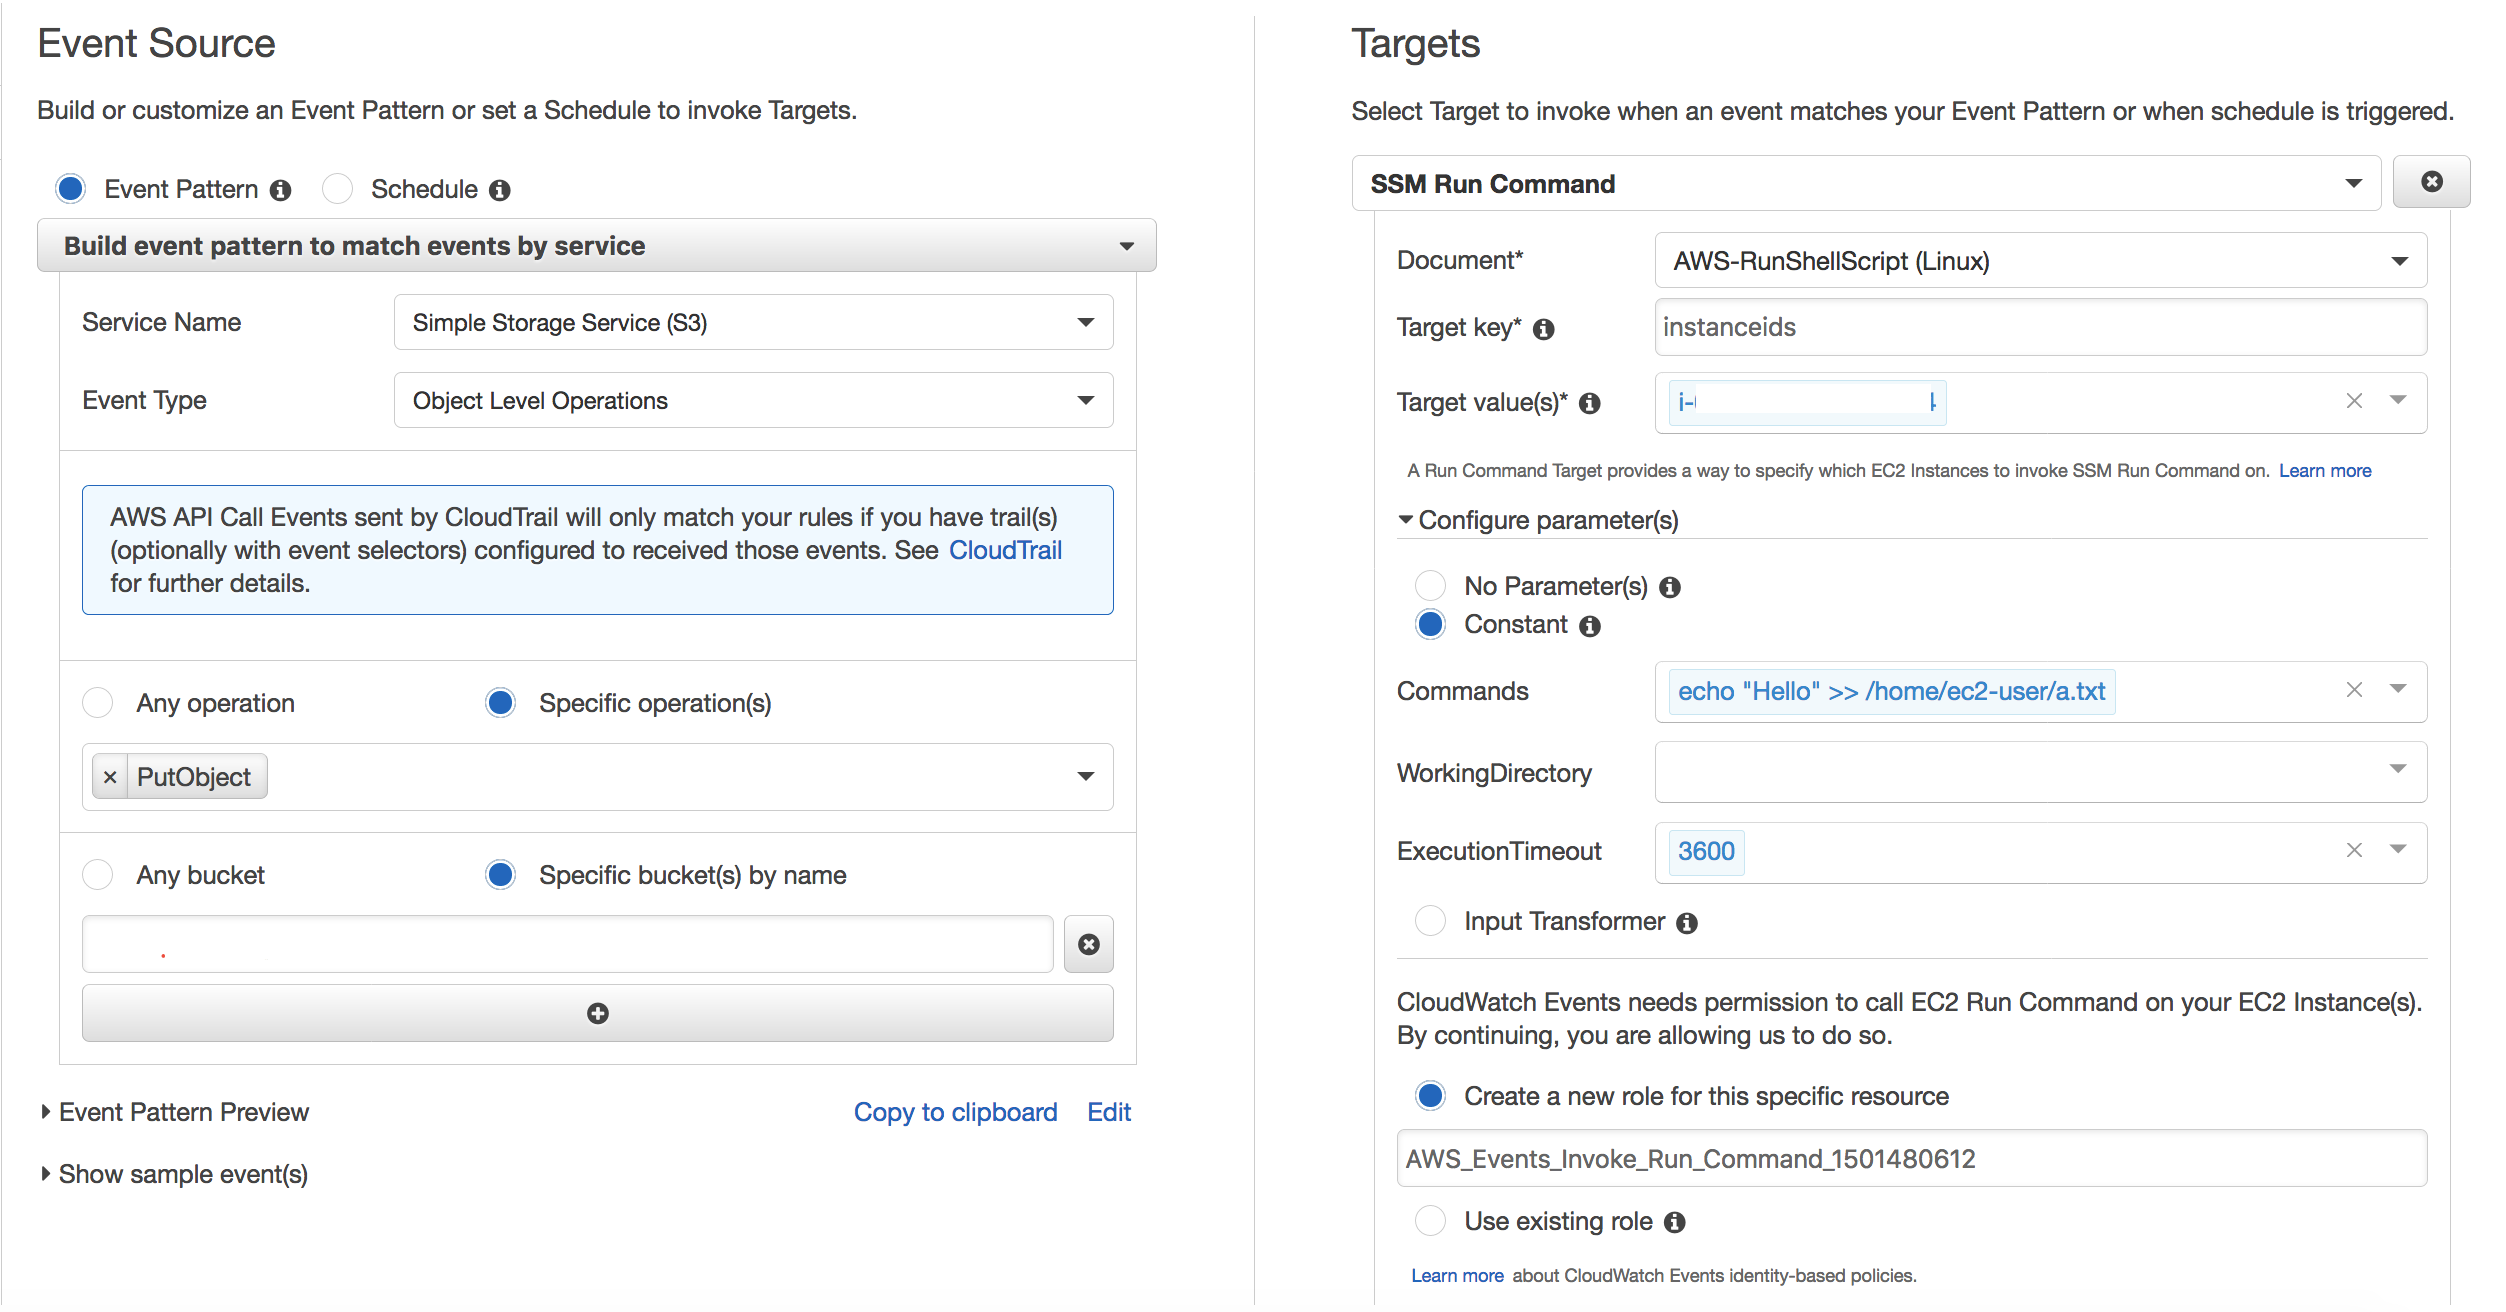 Trigger Actions Inside EC2 Instance on Cloudwatch Events using AWS